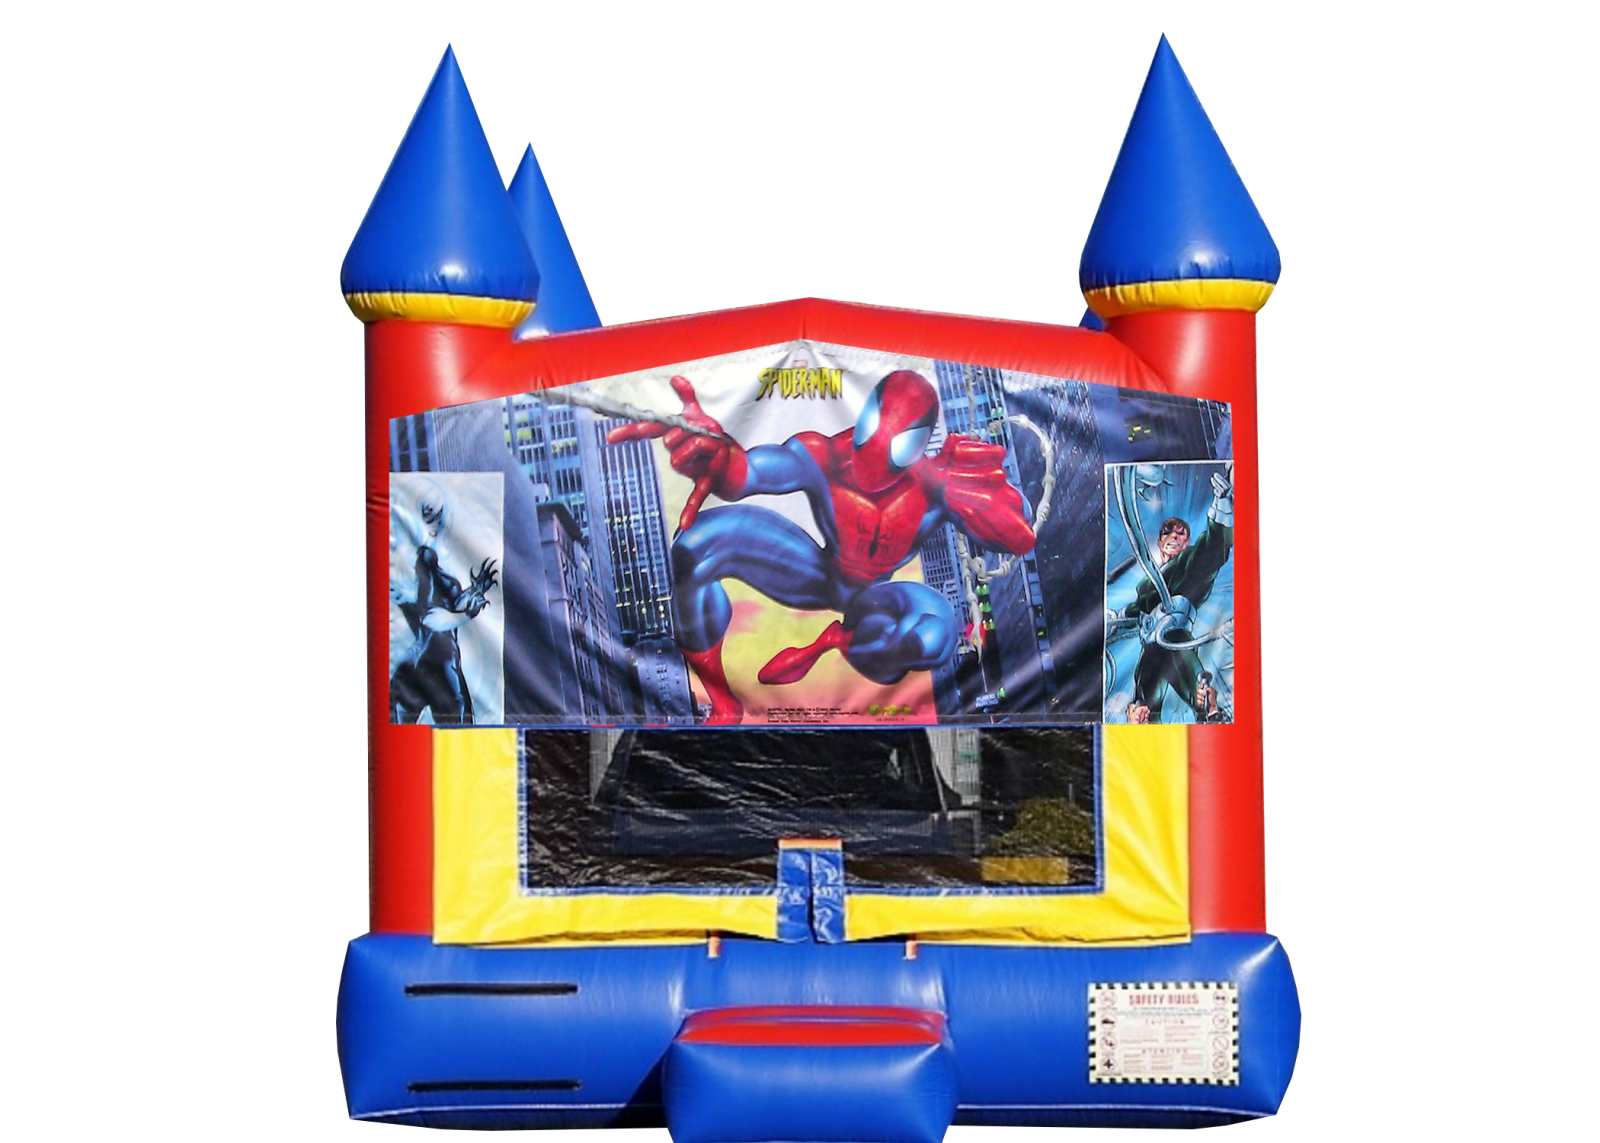 Spiderman Bounce House rental Nashville TN Jumping Hearts Party Rentals